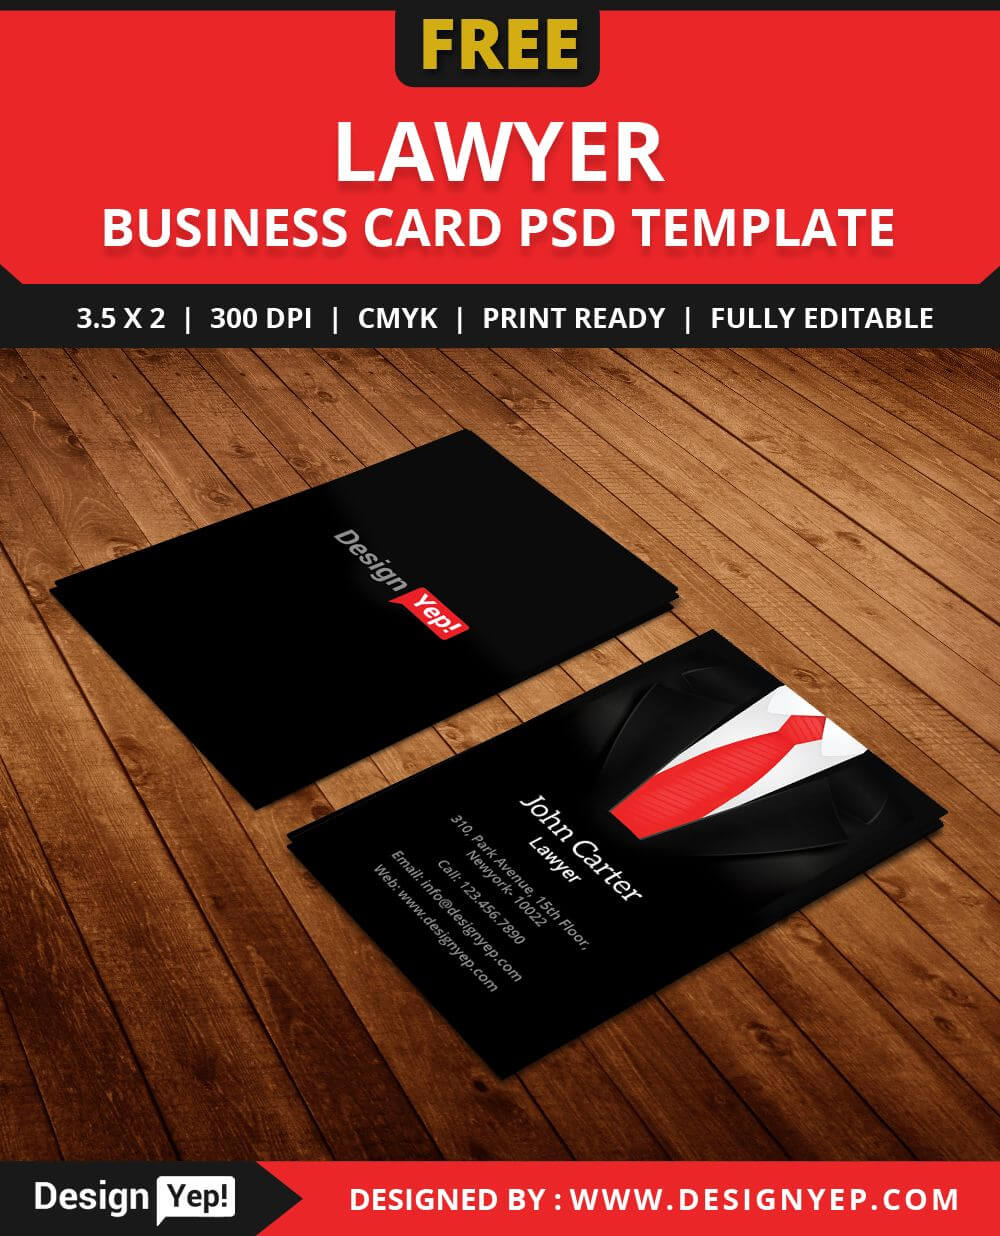 Free-Lawyer-Business-Card-Template-Psd   Free Business Card intended for Calling Card Free Template